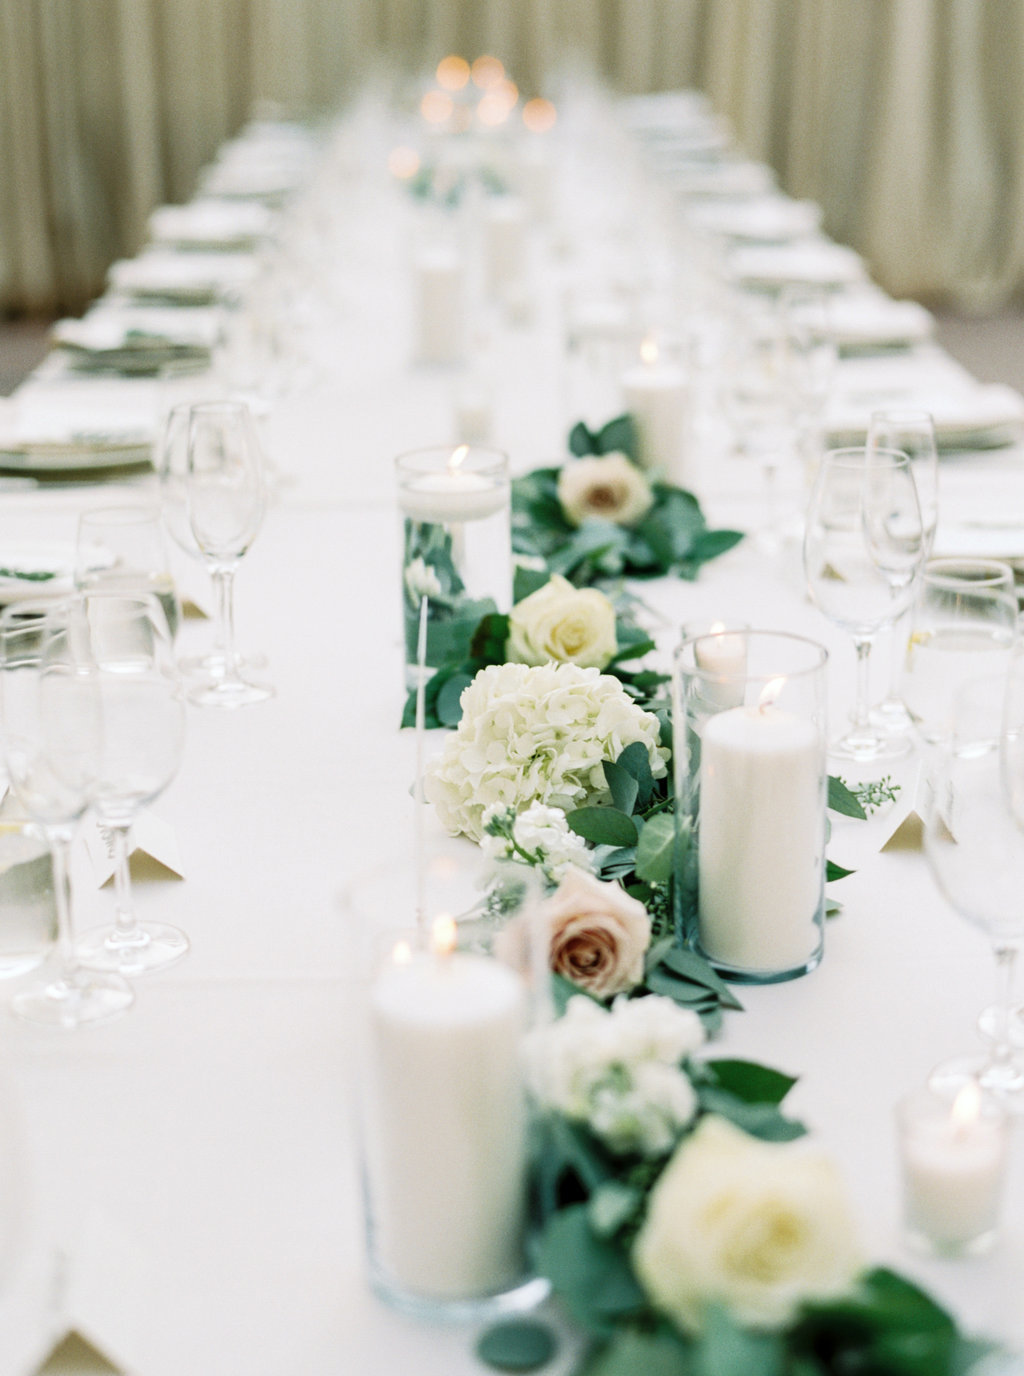 Wedding reception table setting with long eucalyptus garland and white flowers at Butterfly Lane Estate